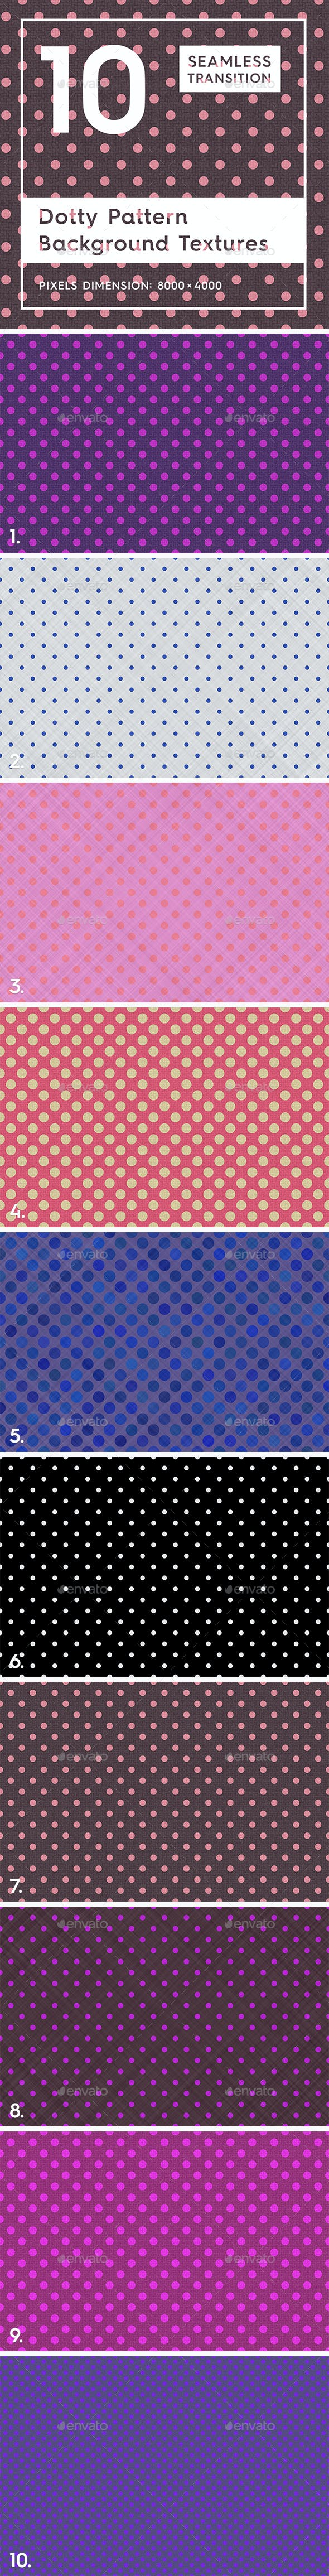 10 Dotty Pattern Background Texture - 3DOcean Item for Sale